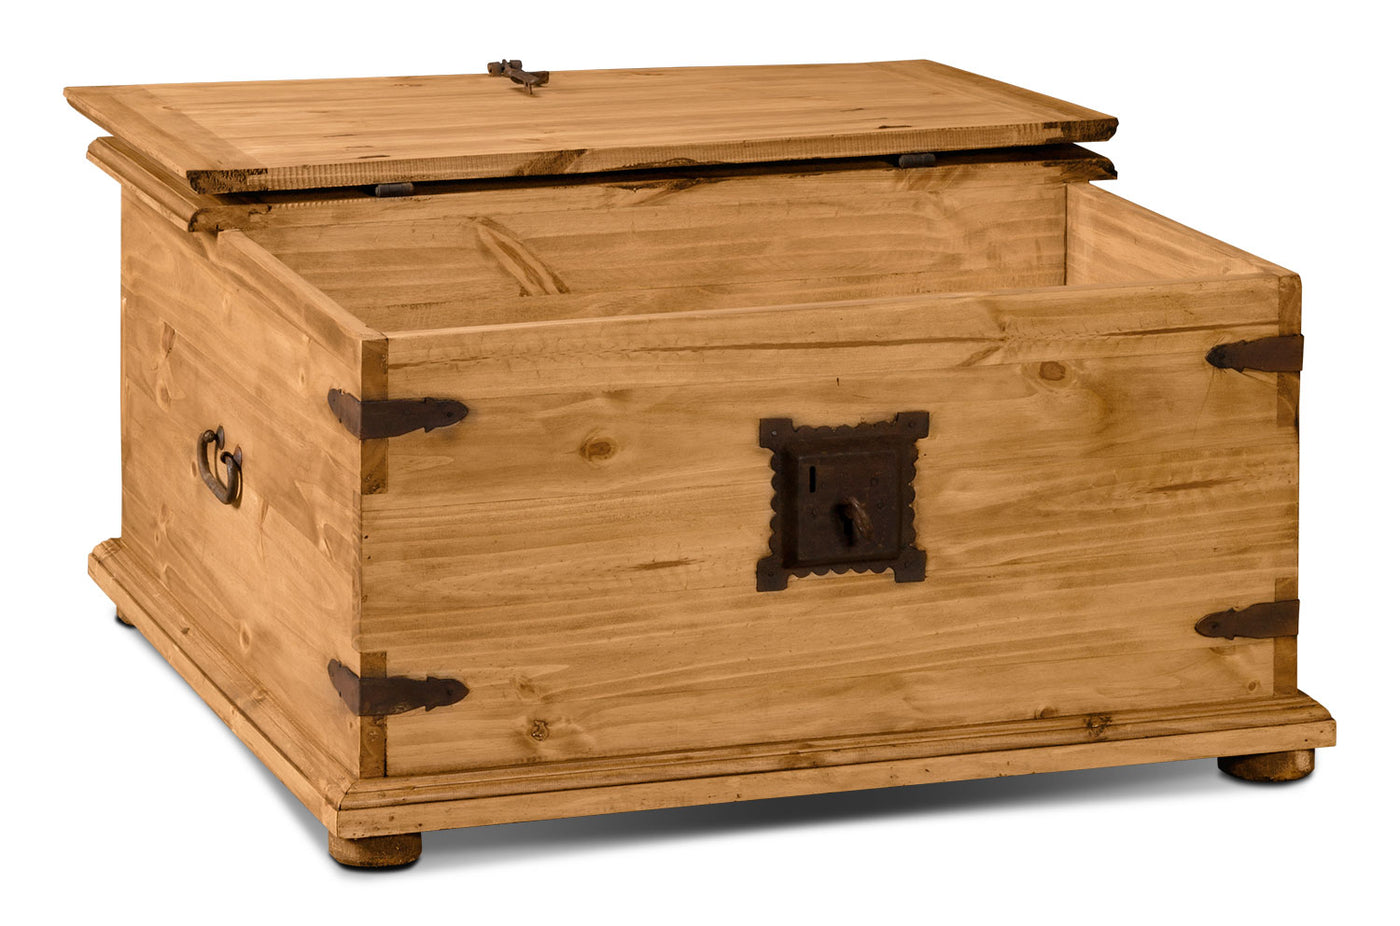 Wood Storage Trunk Coffee Table.Santa Fe Rusticos Solid Pine Trunk Style Coffee Table With Storage